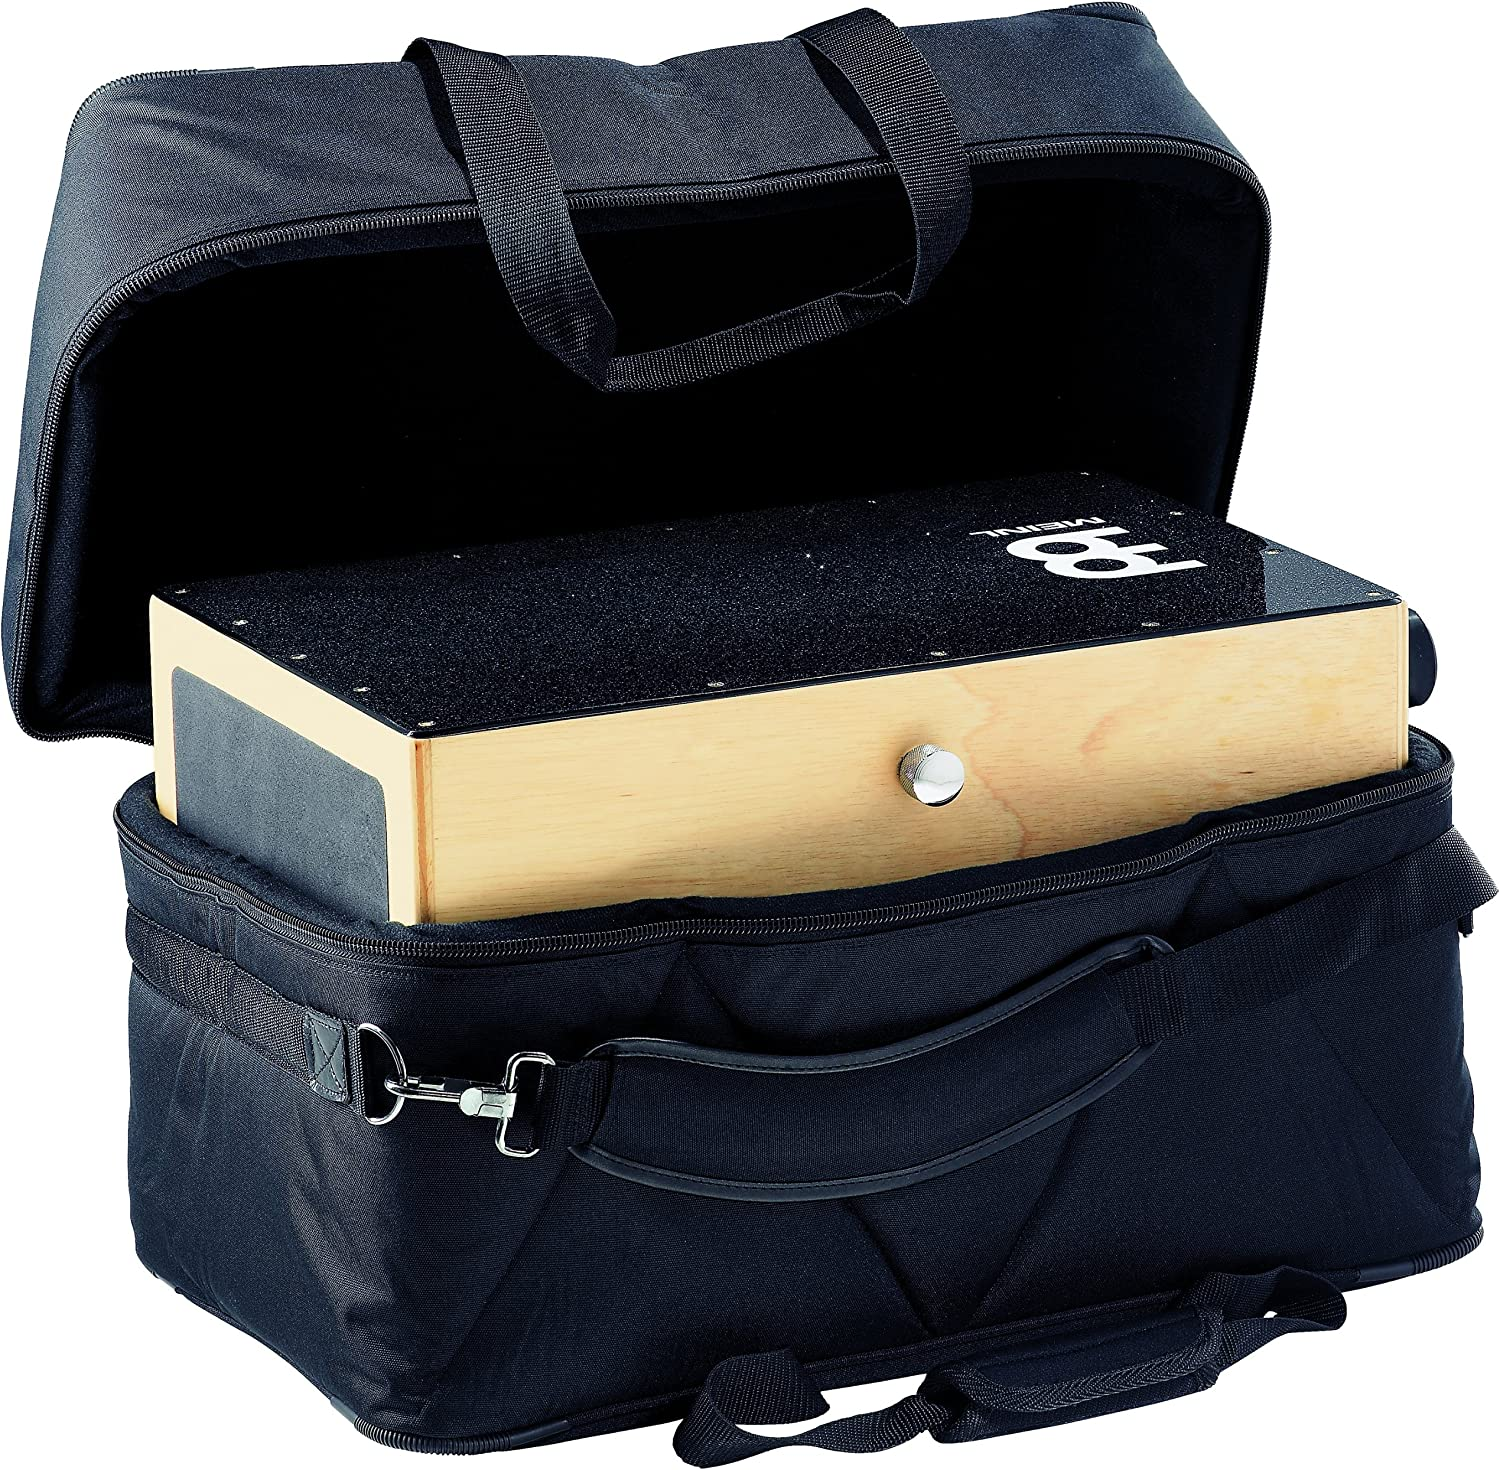 Meinl Percussion MCJB Professional Cajon Bag with Internal Padding, Side Pocket, and Adjustable Shoulder Straps